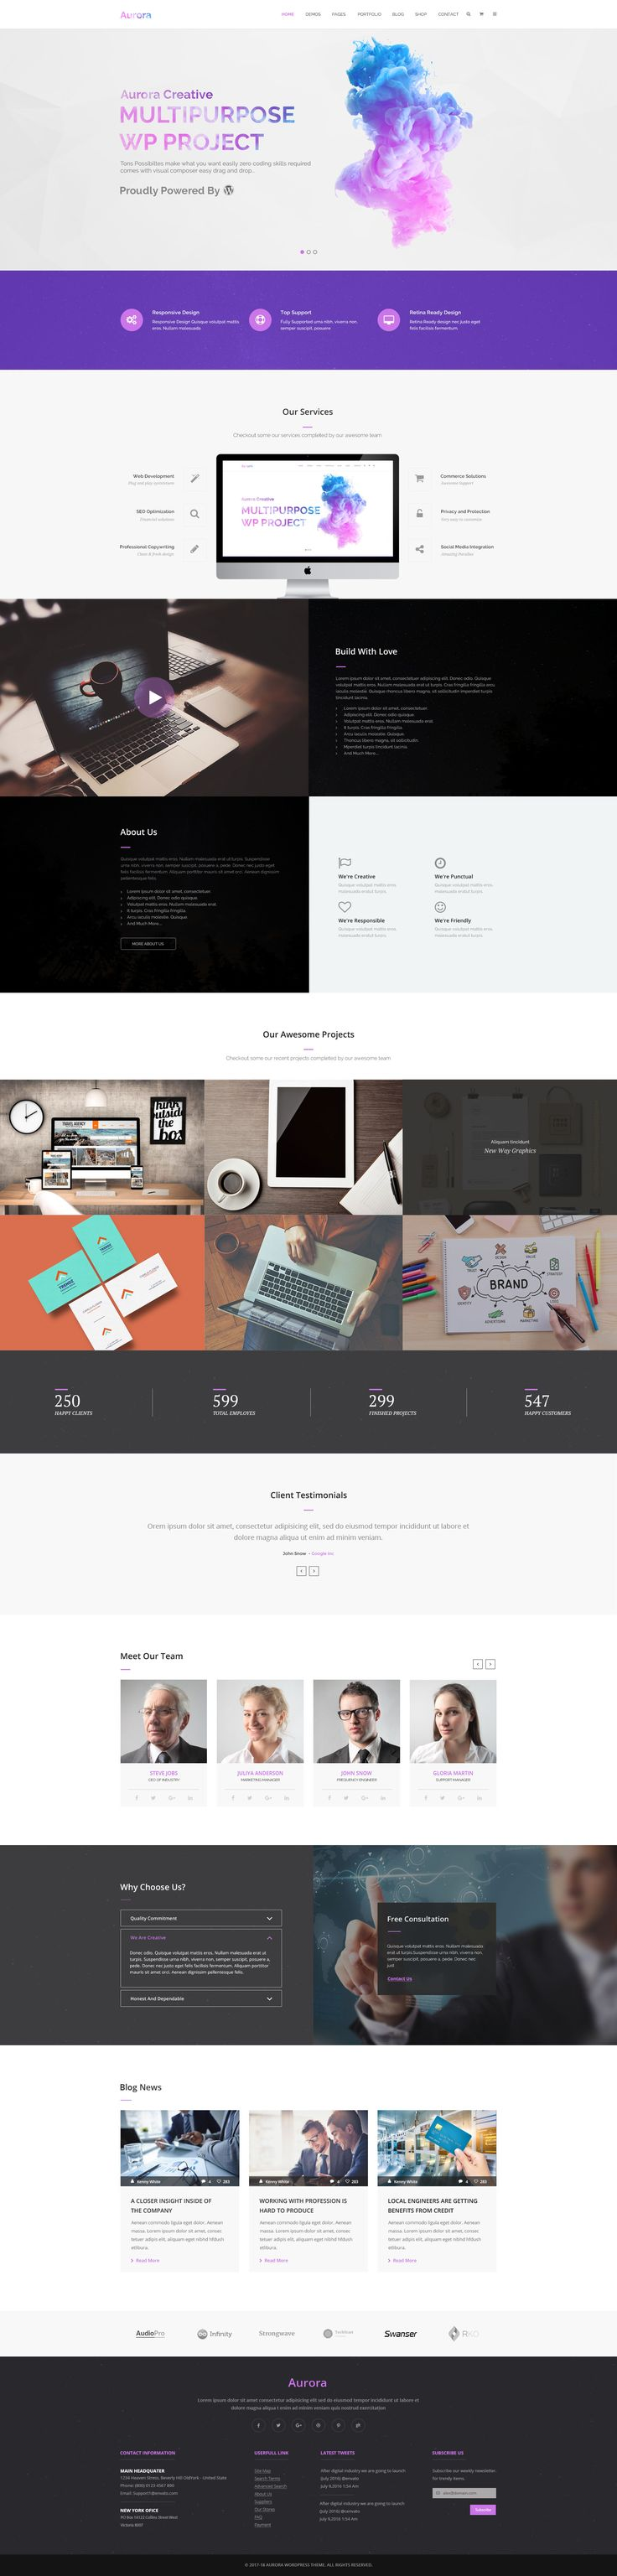 Aurora Creative Multipurpose PSD Template #business #clean #corporate • Download ➝ https://themeforest.net/item/aurora-creative-multipurpose-psd-template/20732496?ref=pxcr  - No site #ThemeForest encontra os melhores #Templates & #Plugins para #Wordpress. Confira em http://www.estrategiadigital.pt/themeforest-templates-wordpress/